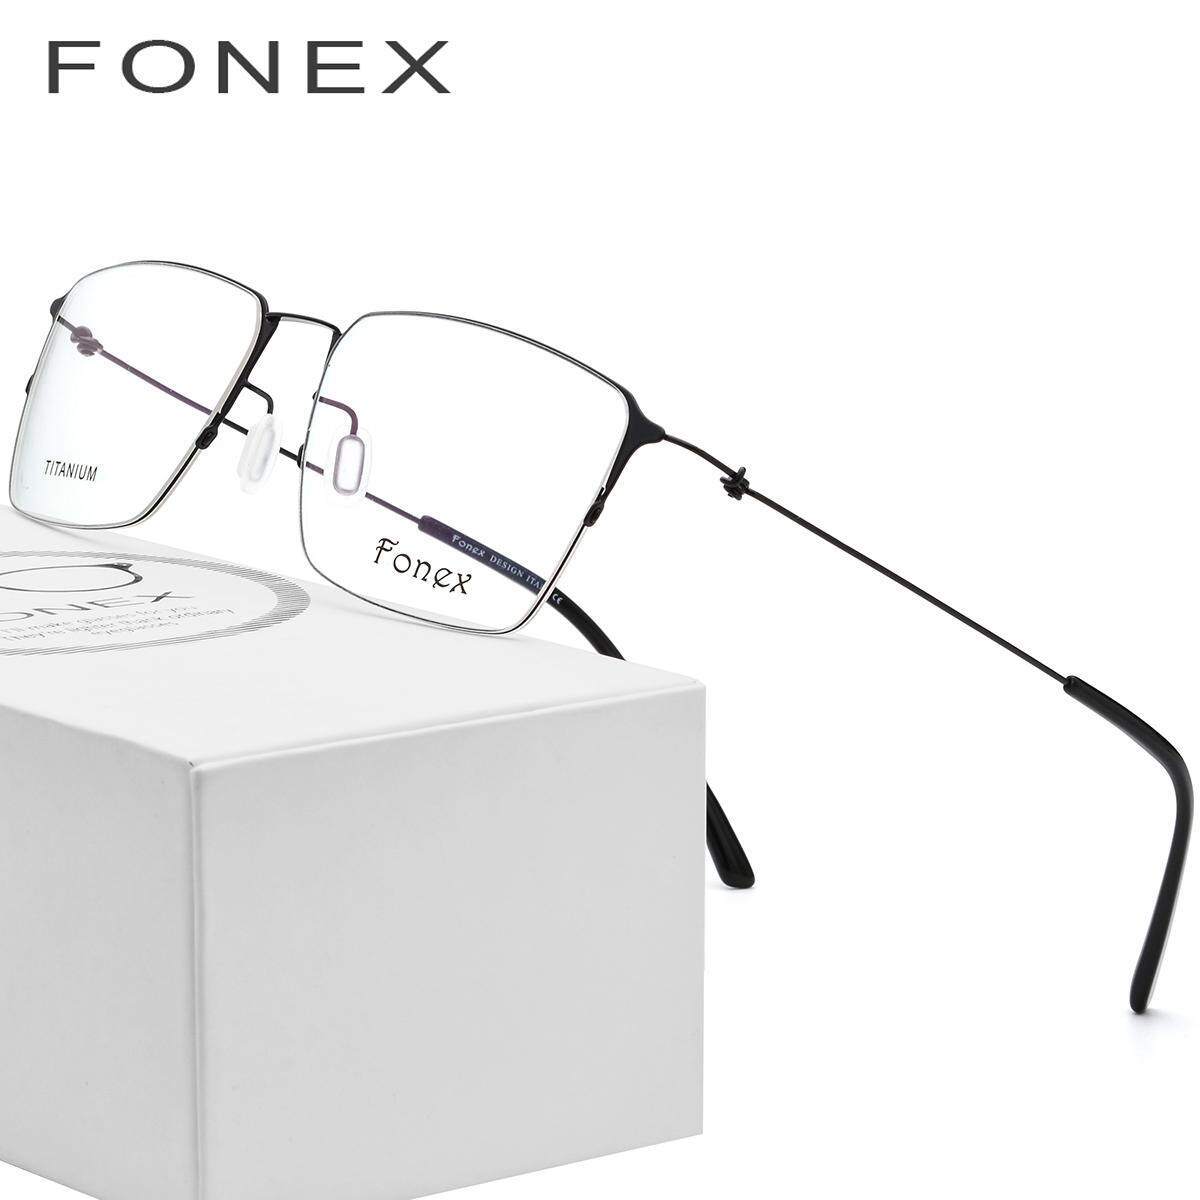 e711bdddbbc FONEX 2017 Screwless Eyewear Korean Glasses Frame Men Rimless Titanium  Alloy Prescription Eyeglasses Myopia Optical Frames